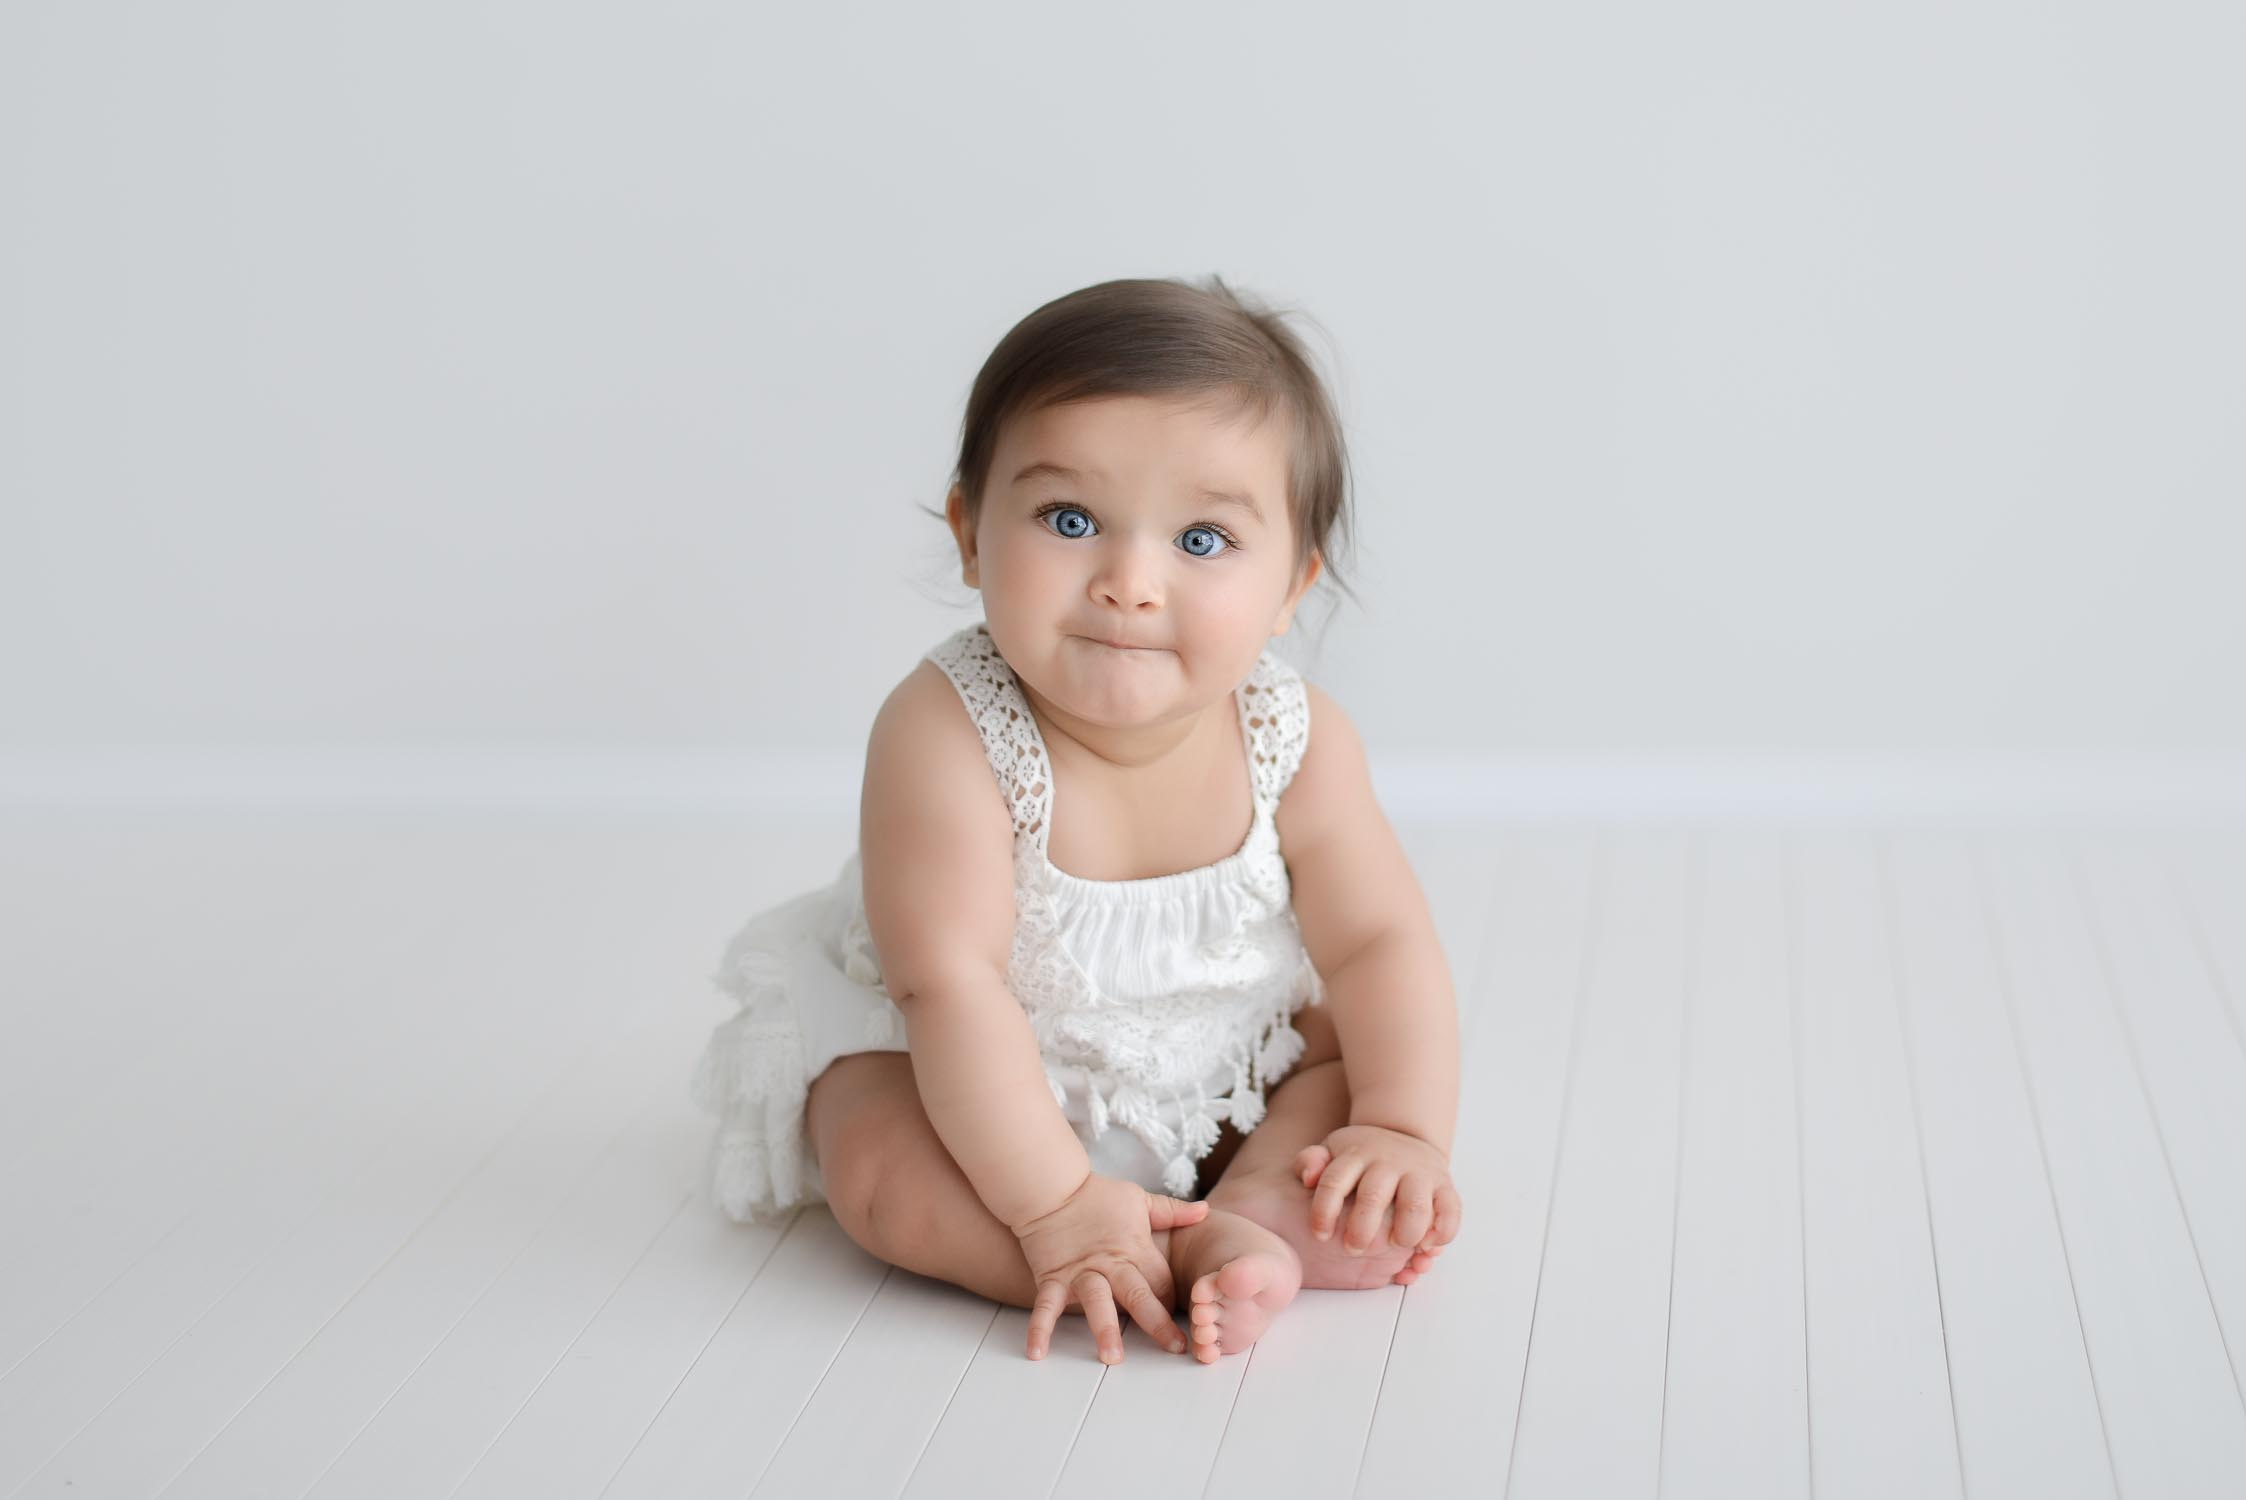 young baby sitting in natural light studio holding toes wearing white romper